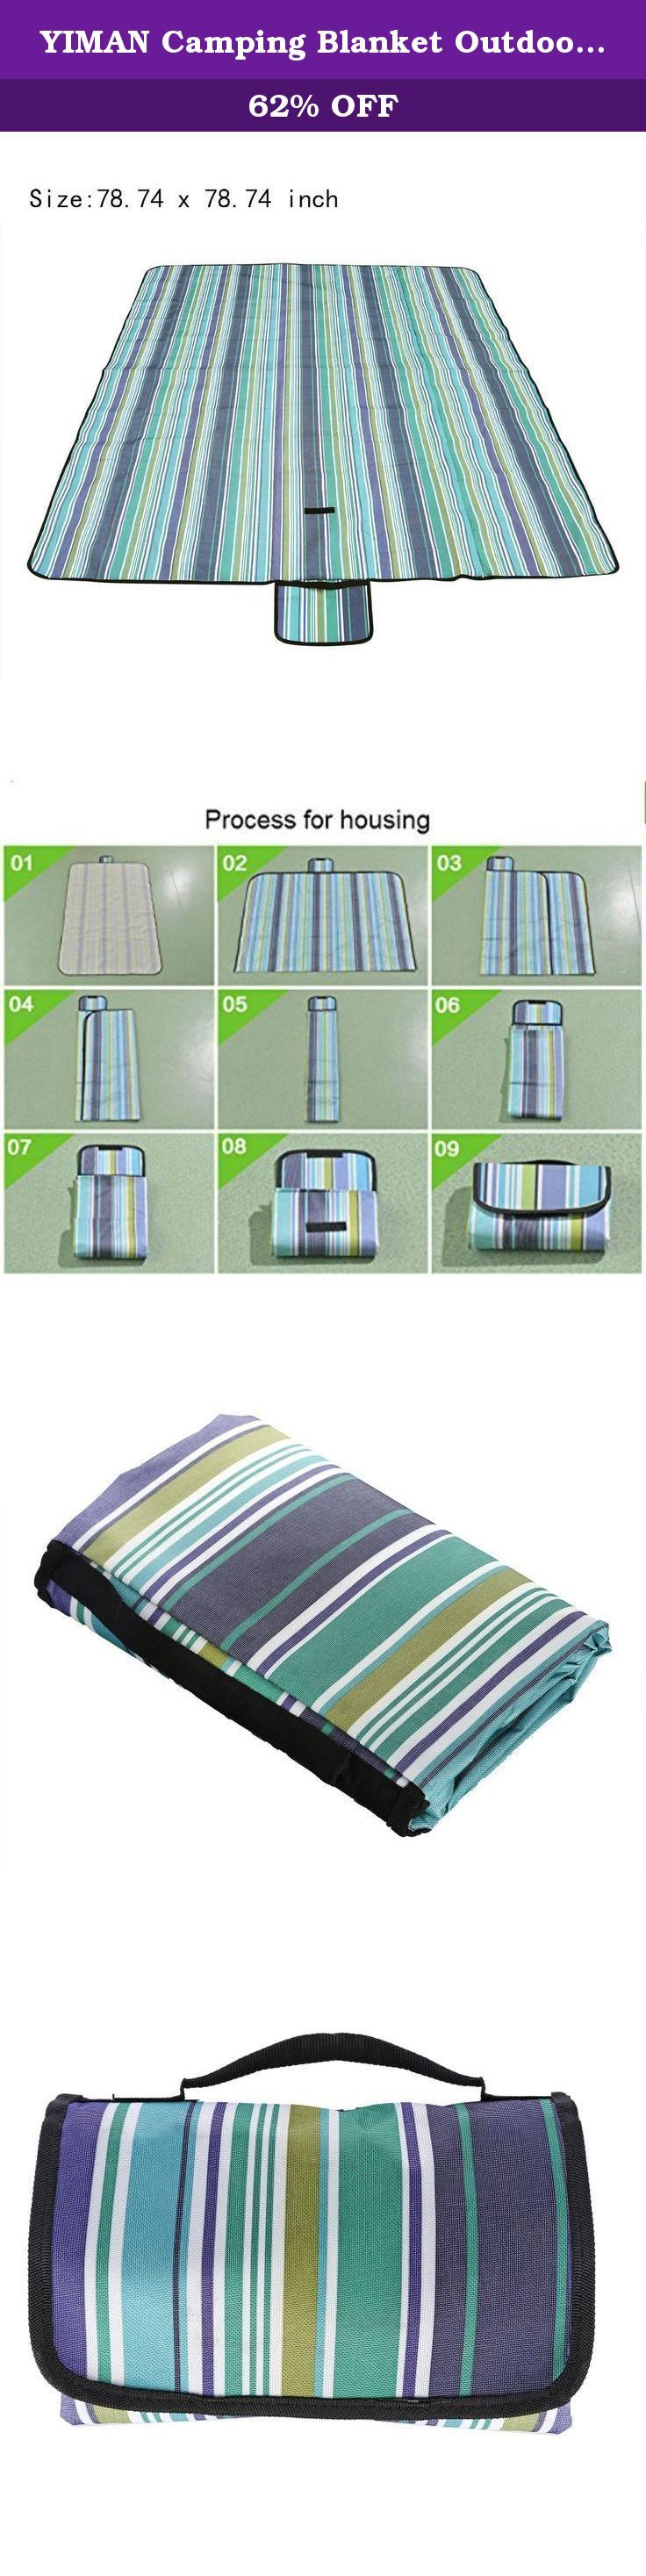 YIMAN Camping Blanket Outdoor Oxford Fabric Picnic Blanket 78 IN x 78 IN All-Purpose Water-Resistant Mat,Extral Large Blanket Beach Mat Blue Stripes. Why Get A Picnic Blanket? Moisture-proof pad is very important when outdoor. The functions are great. Firstly, anti-Ge. It is difficult to find a flat place when camping or hiking. You will feel uncomfortable when sleeping. If you use a mat, the situation would be better. Second, keeping warm. Your body should contact with the ground…